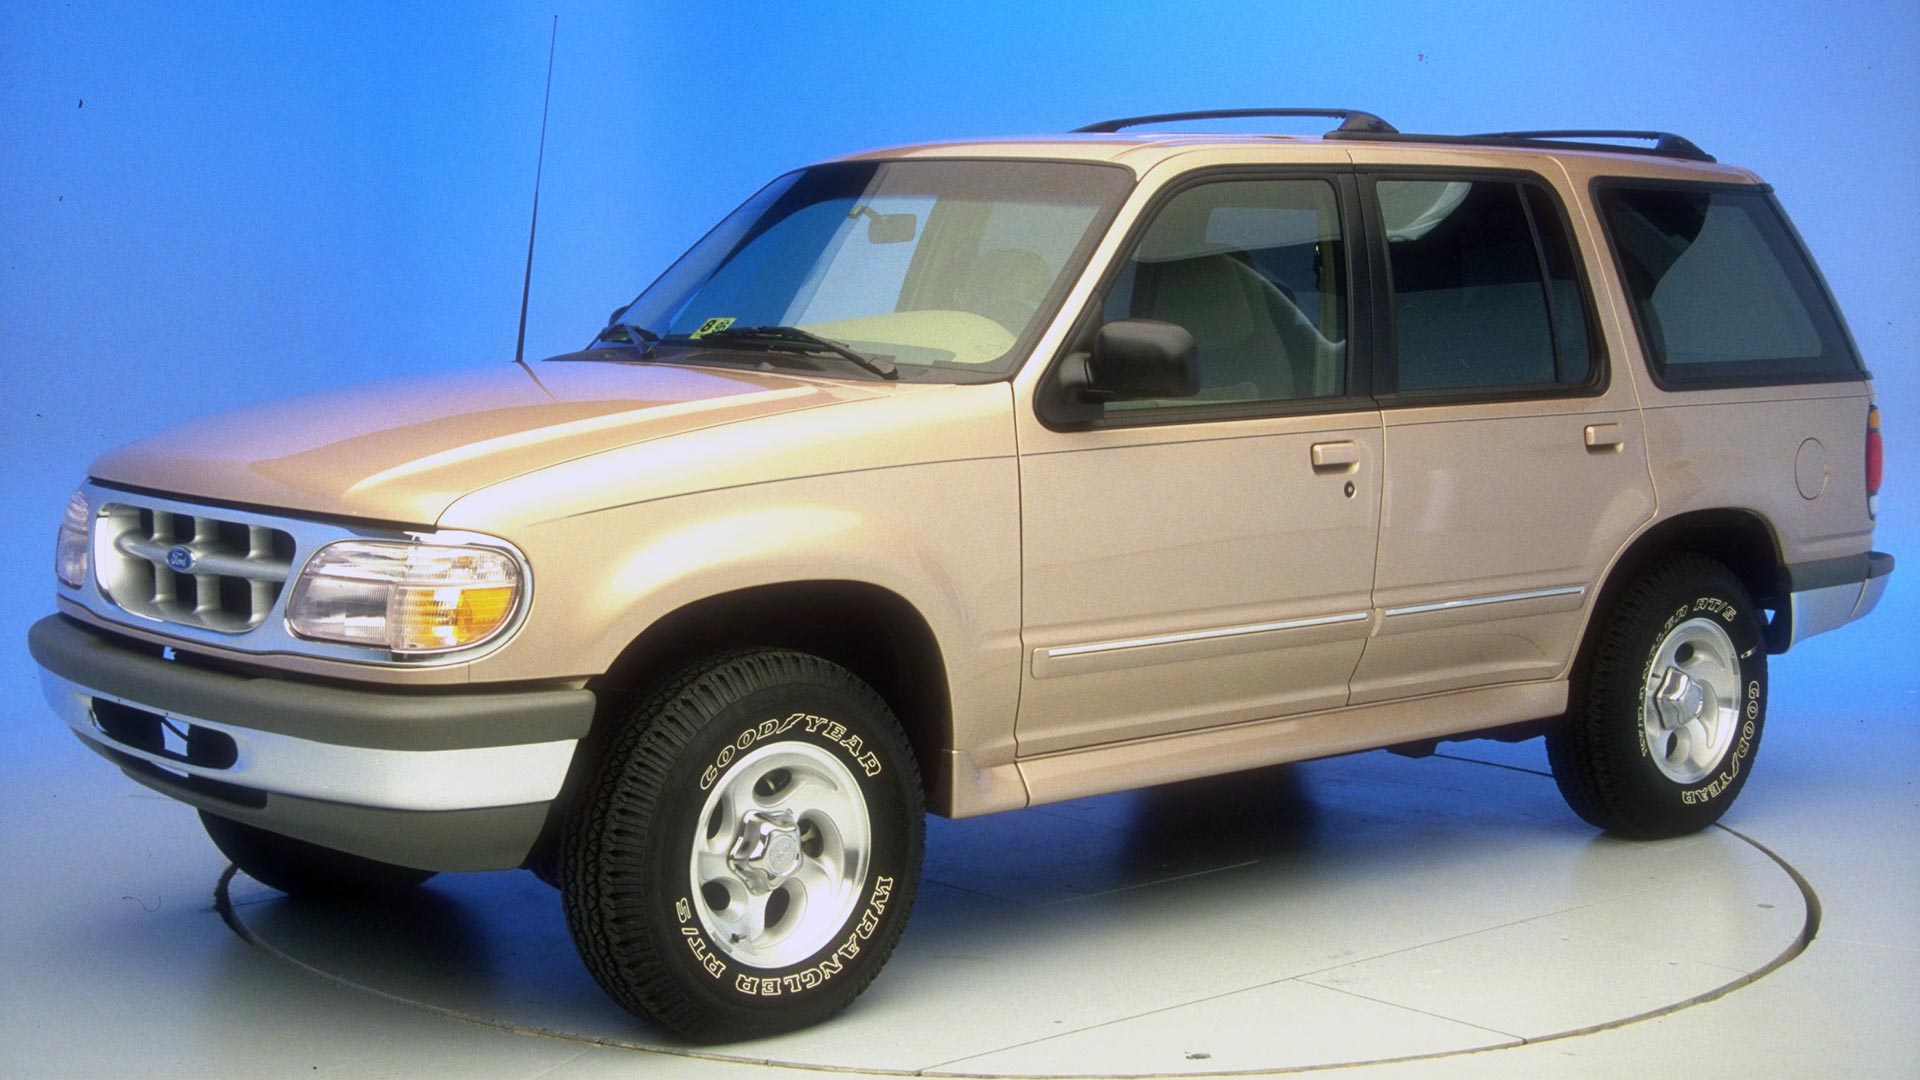 2000 Ford Explorer 4-door SUV